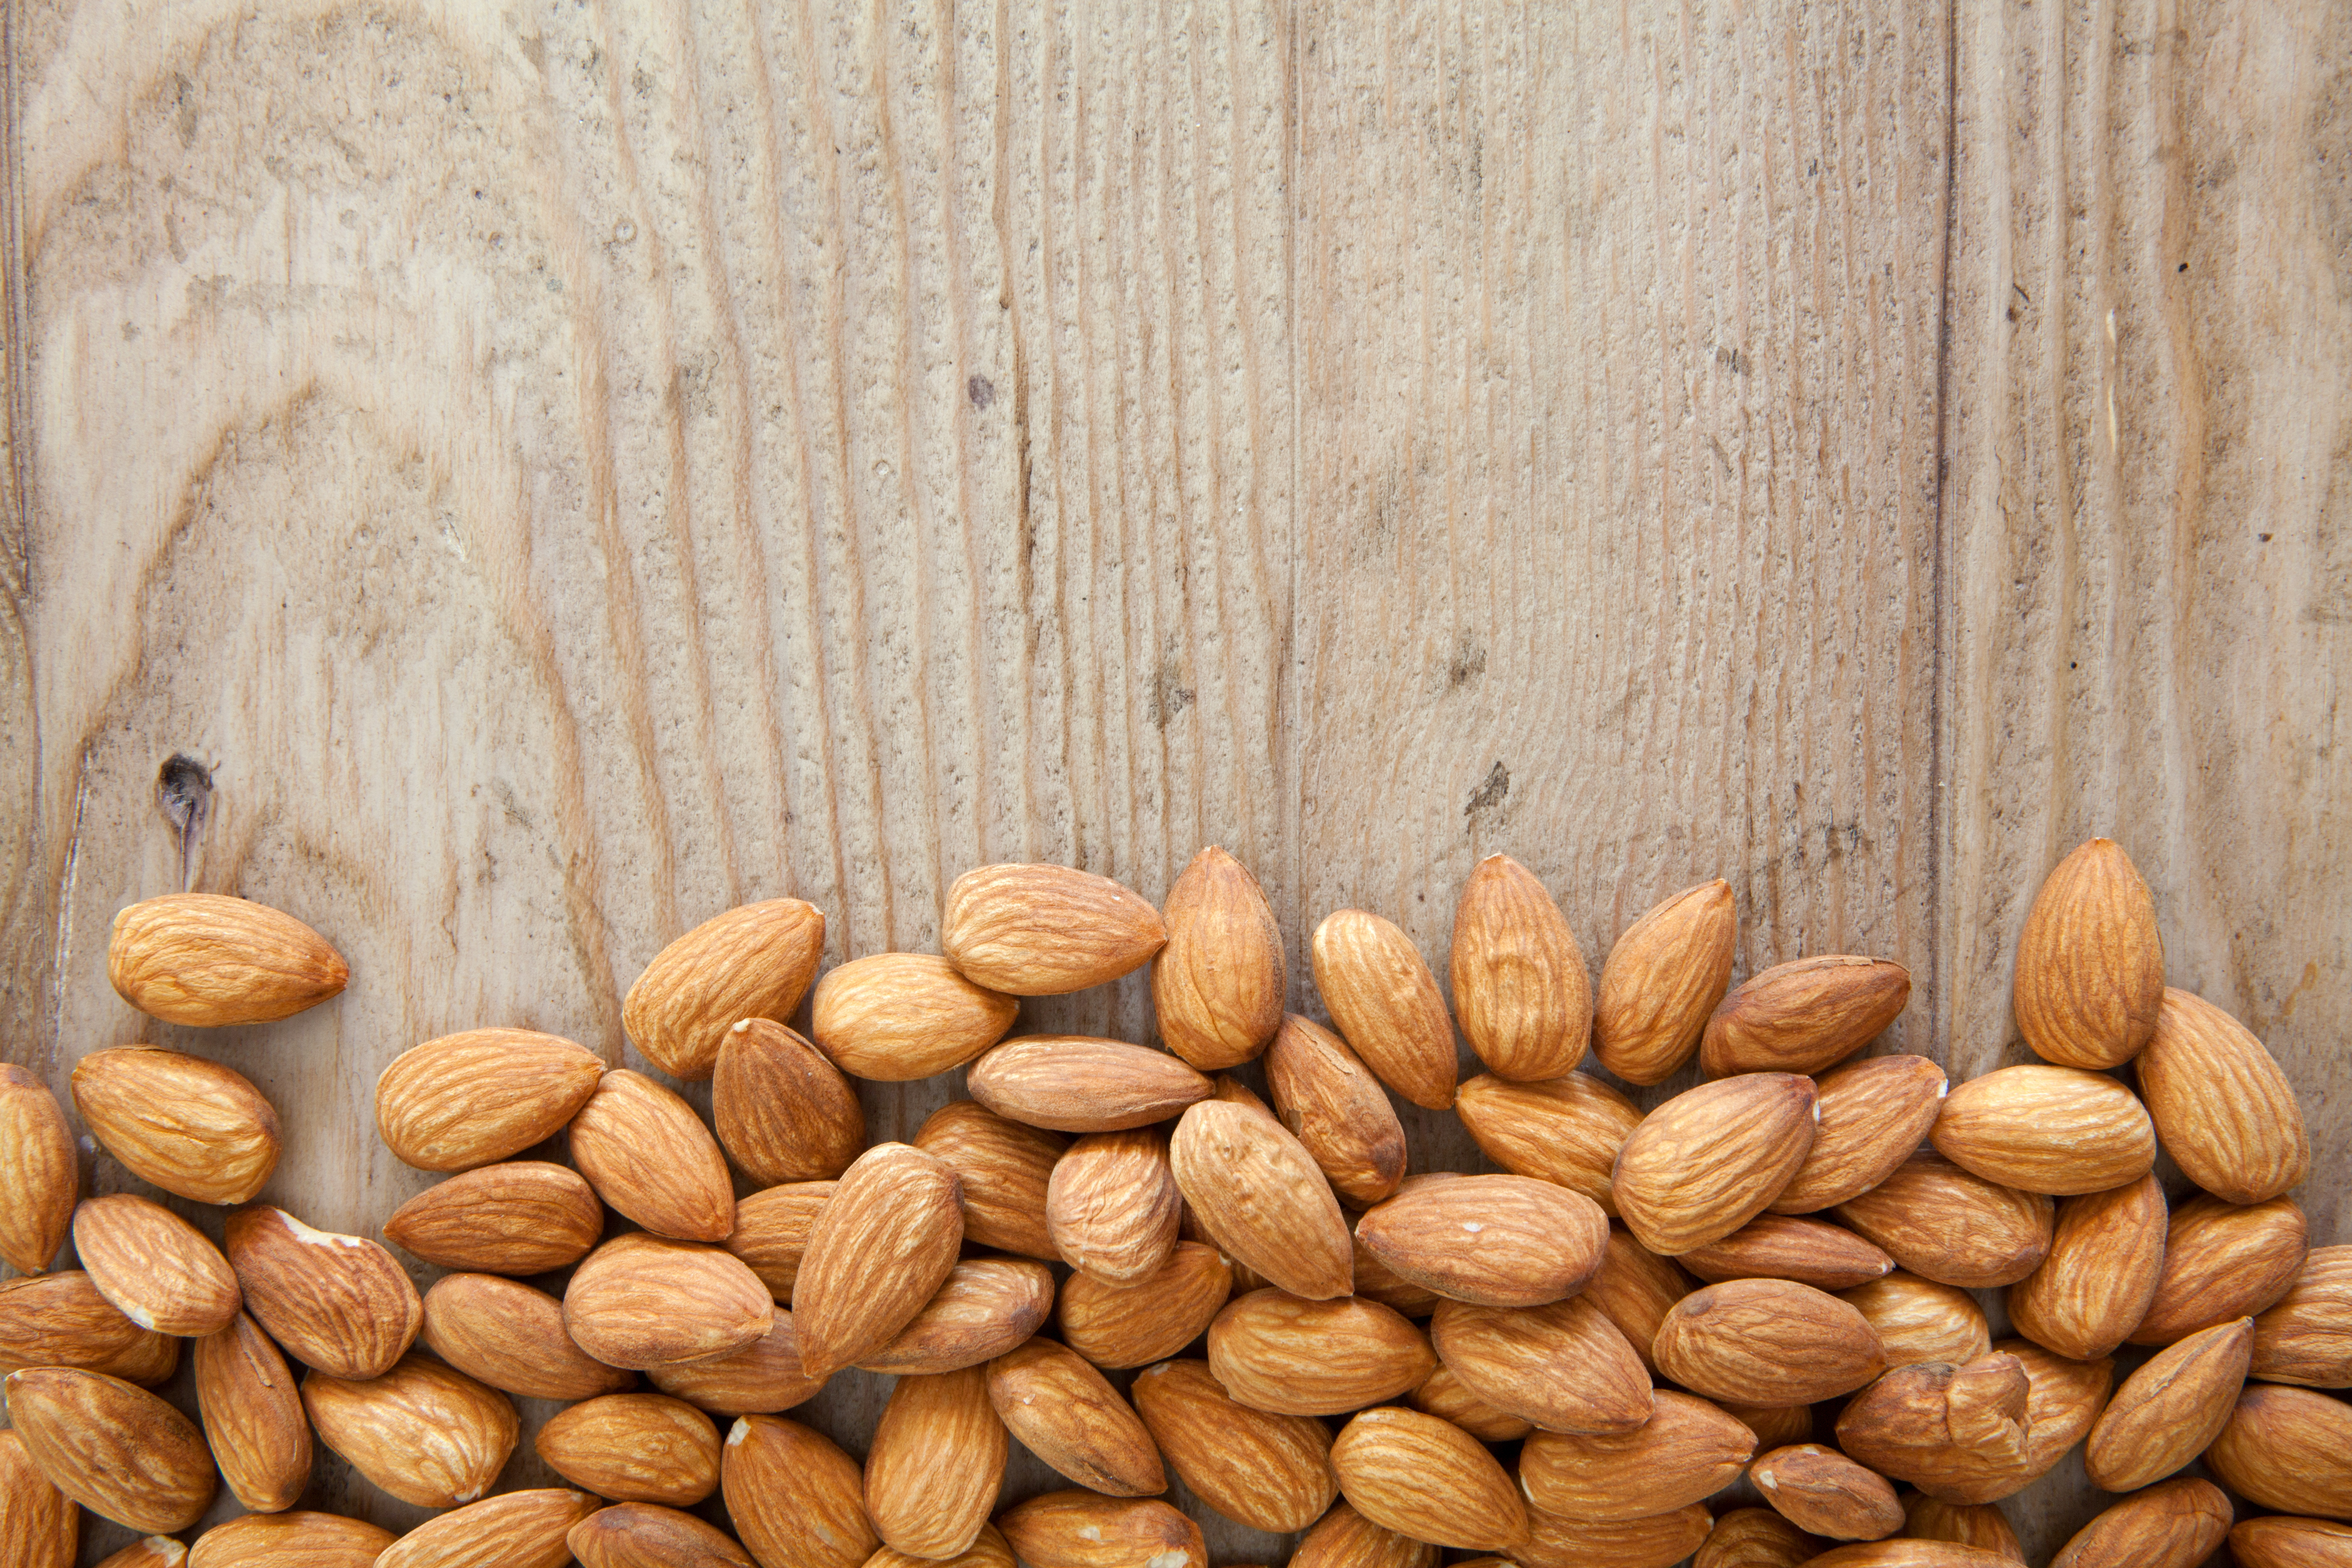 The BEST Healthy Family Snacks